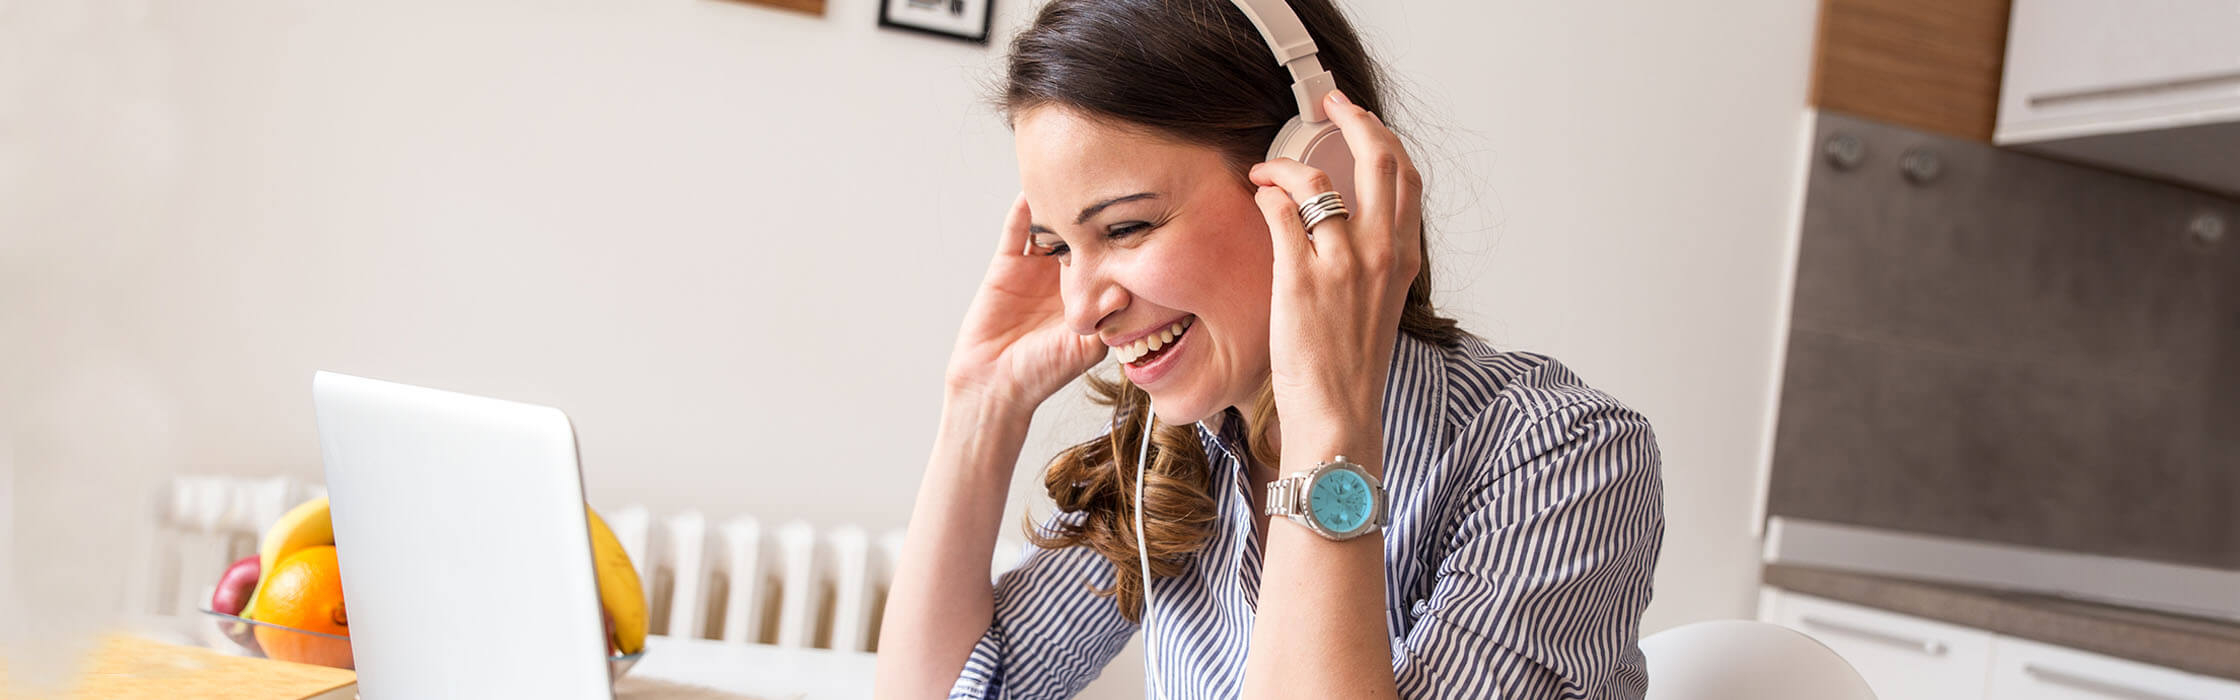 Woman on video call with headphones smiling